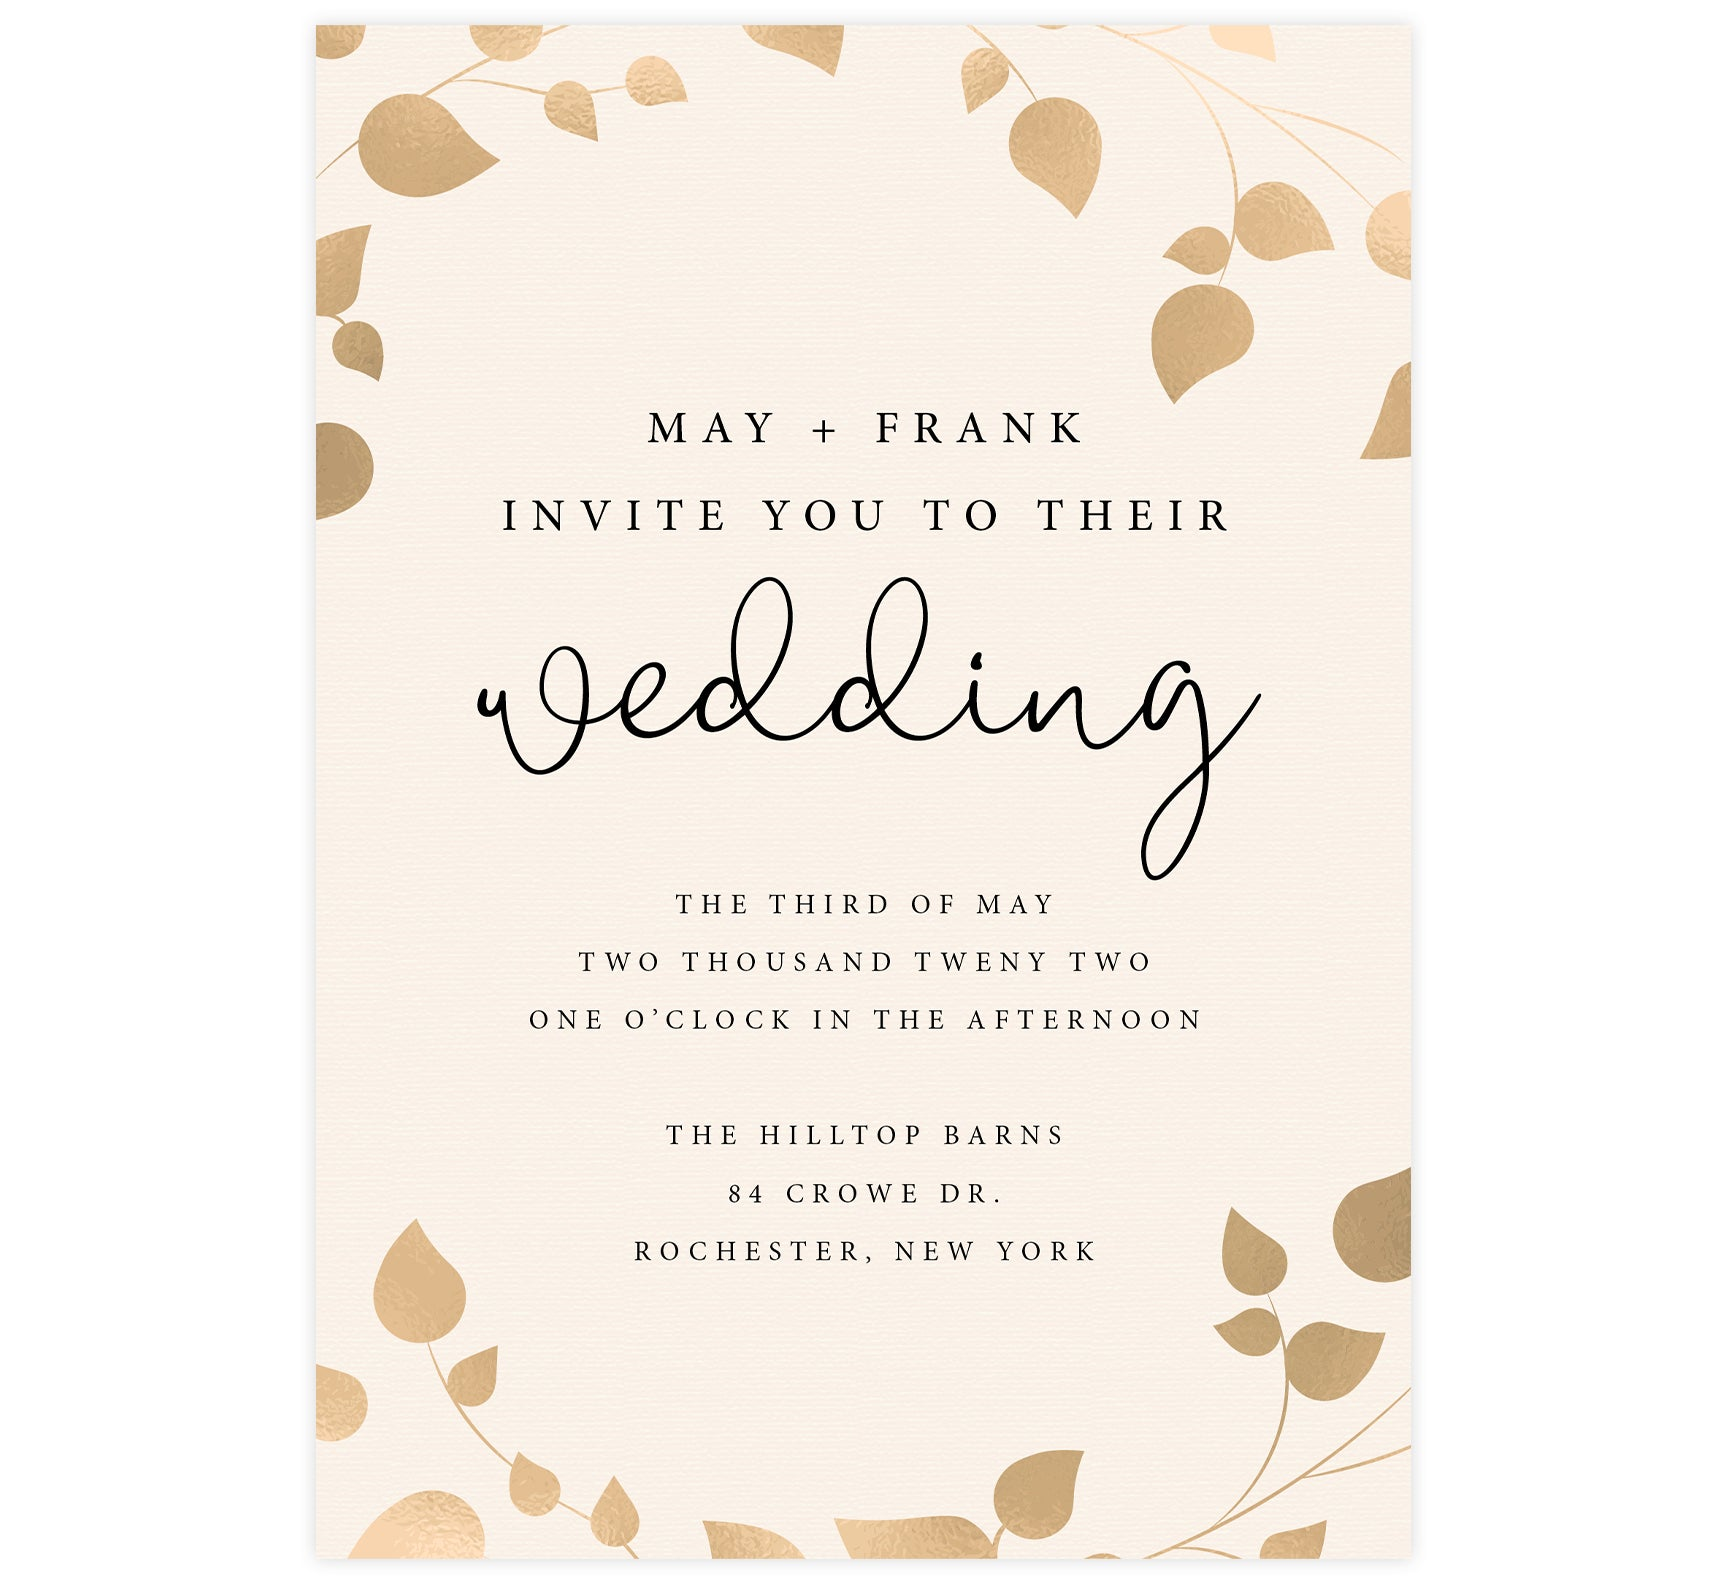 Elegant Celebration Wedding invitation; cream textured background with gold leaves around the edges and black text